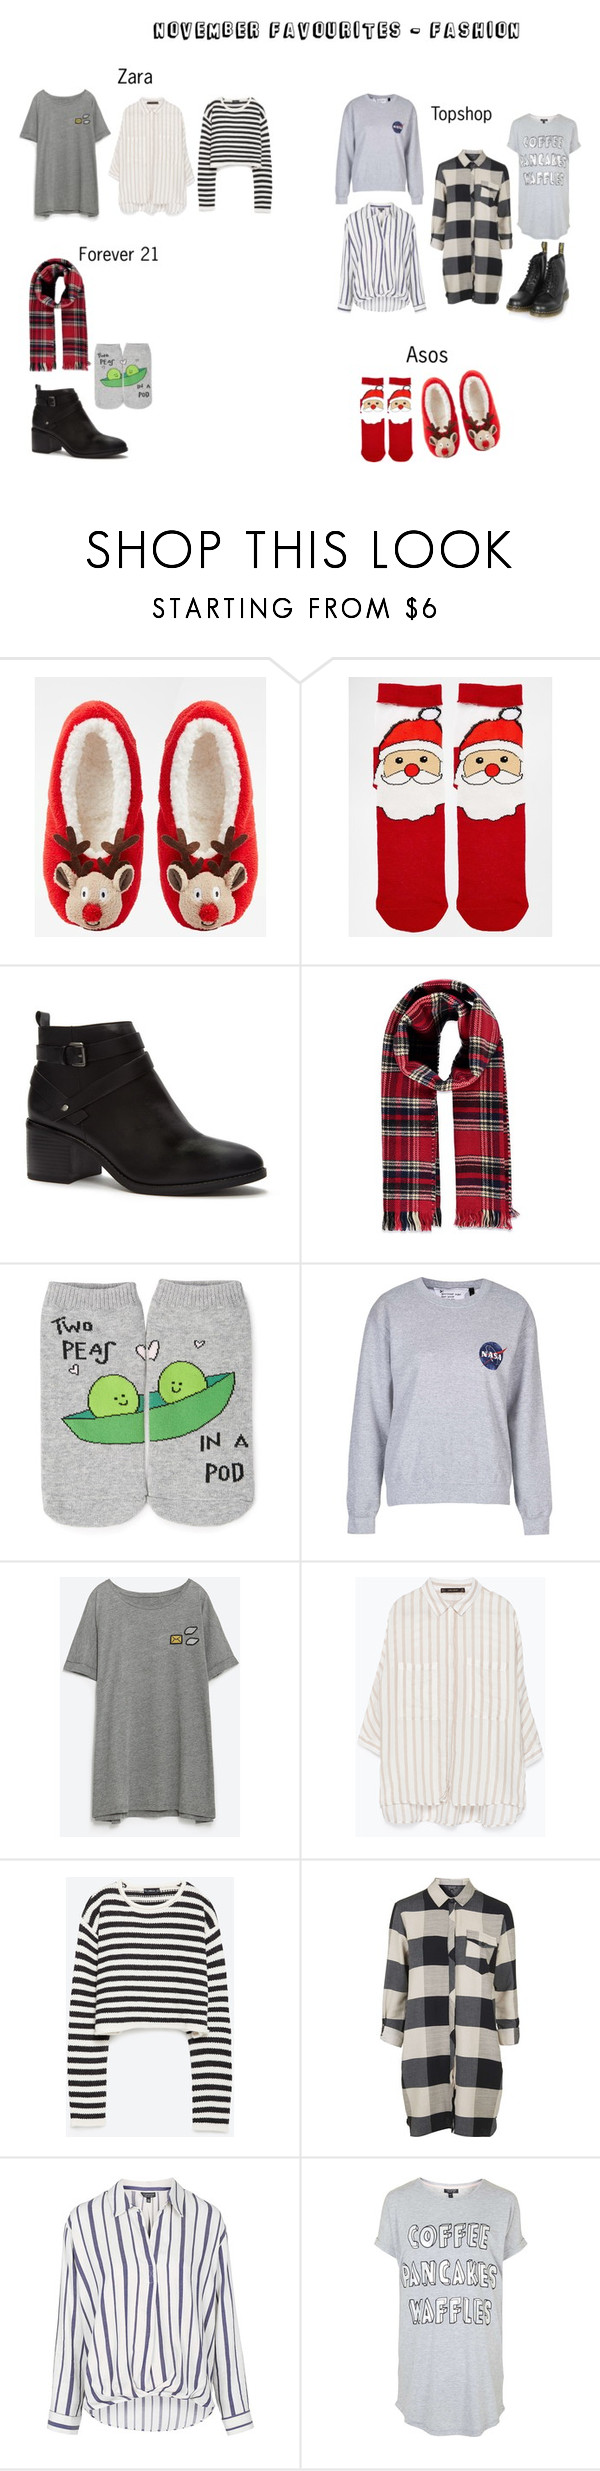 """""""My November favourites- Fashion"""" by silly-stegosaurus ❤ liked on Polyvore featuring ASOS, Forever 21, Topshop, Zara and Dr. Martens"""